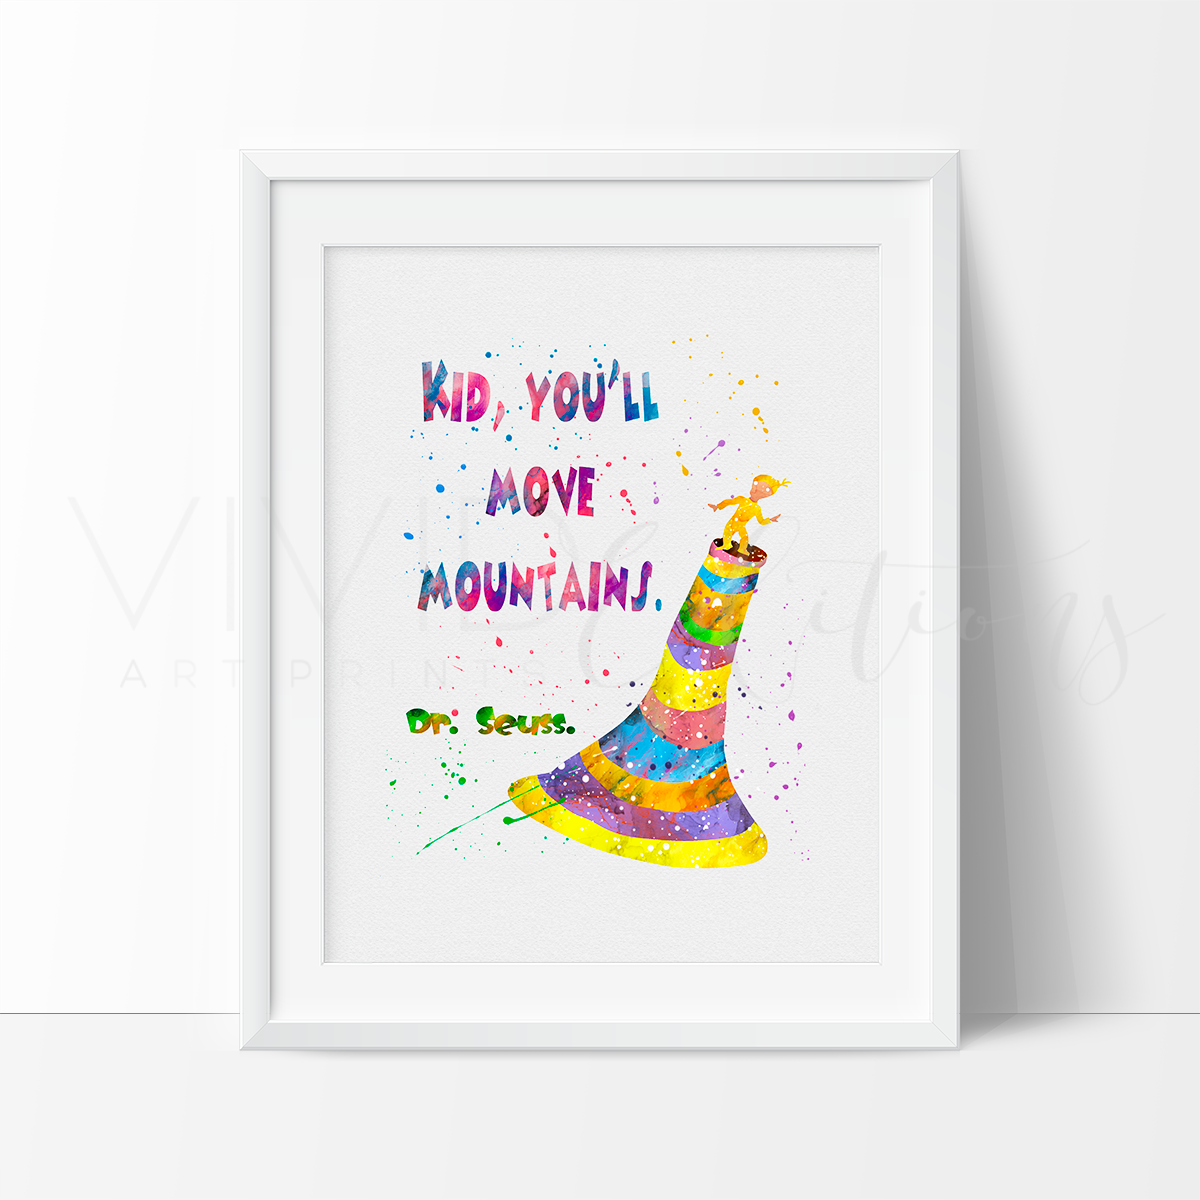 Kid Youll Move Mountains Dr Seuss Vivideditions